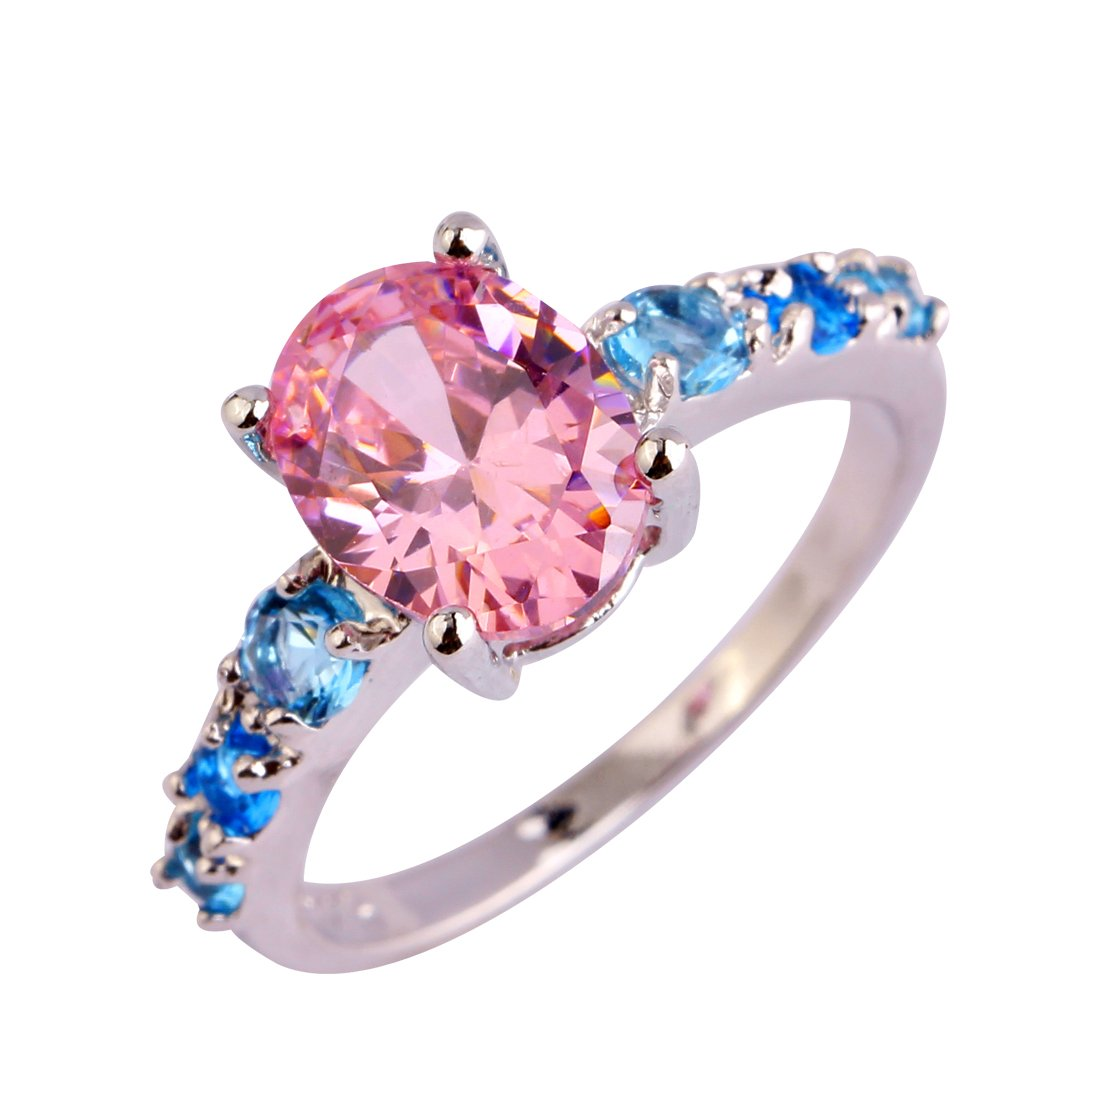 Narica Womens Brilliant 7mmx9mm Oval Cut Pink Topaz CZ Ring Band